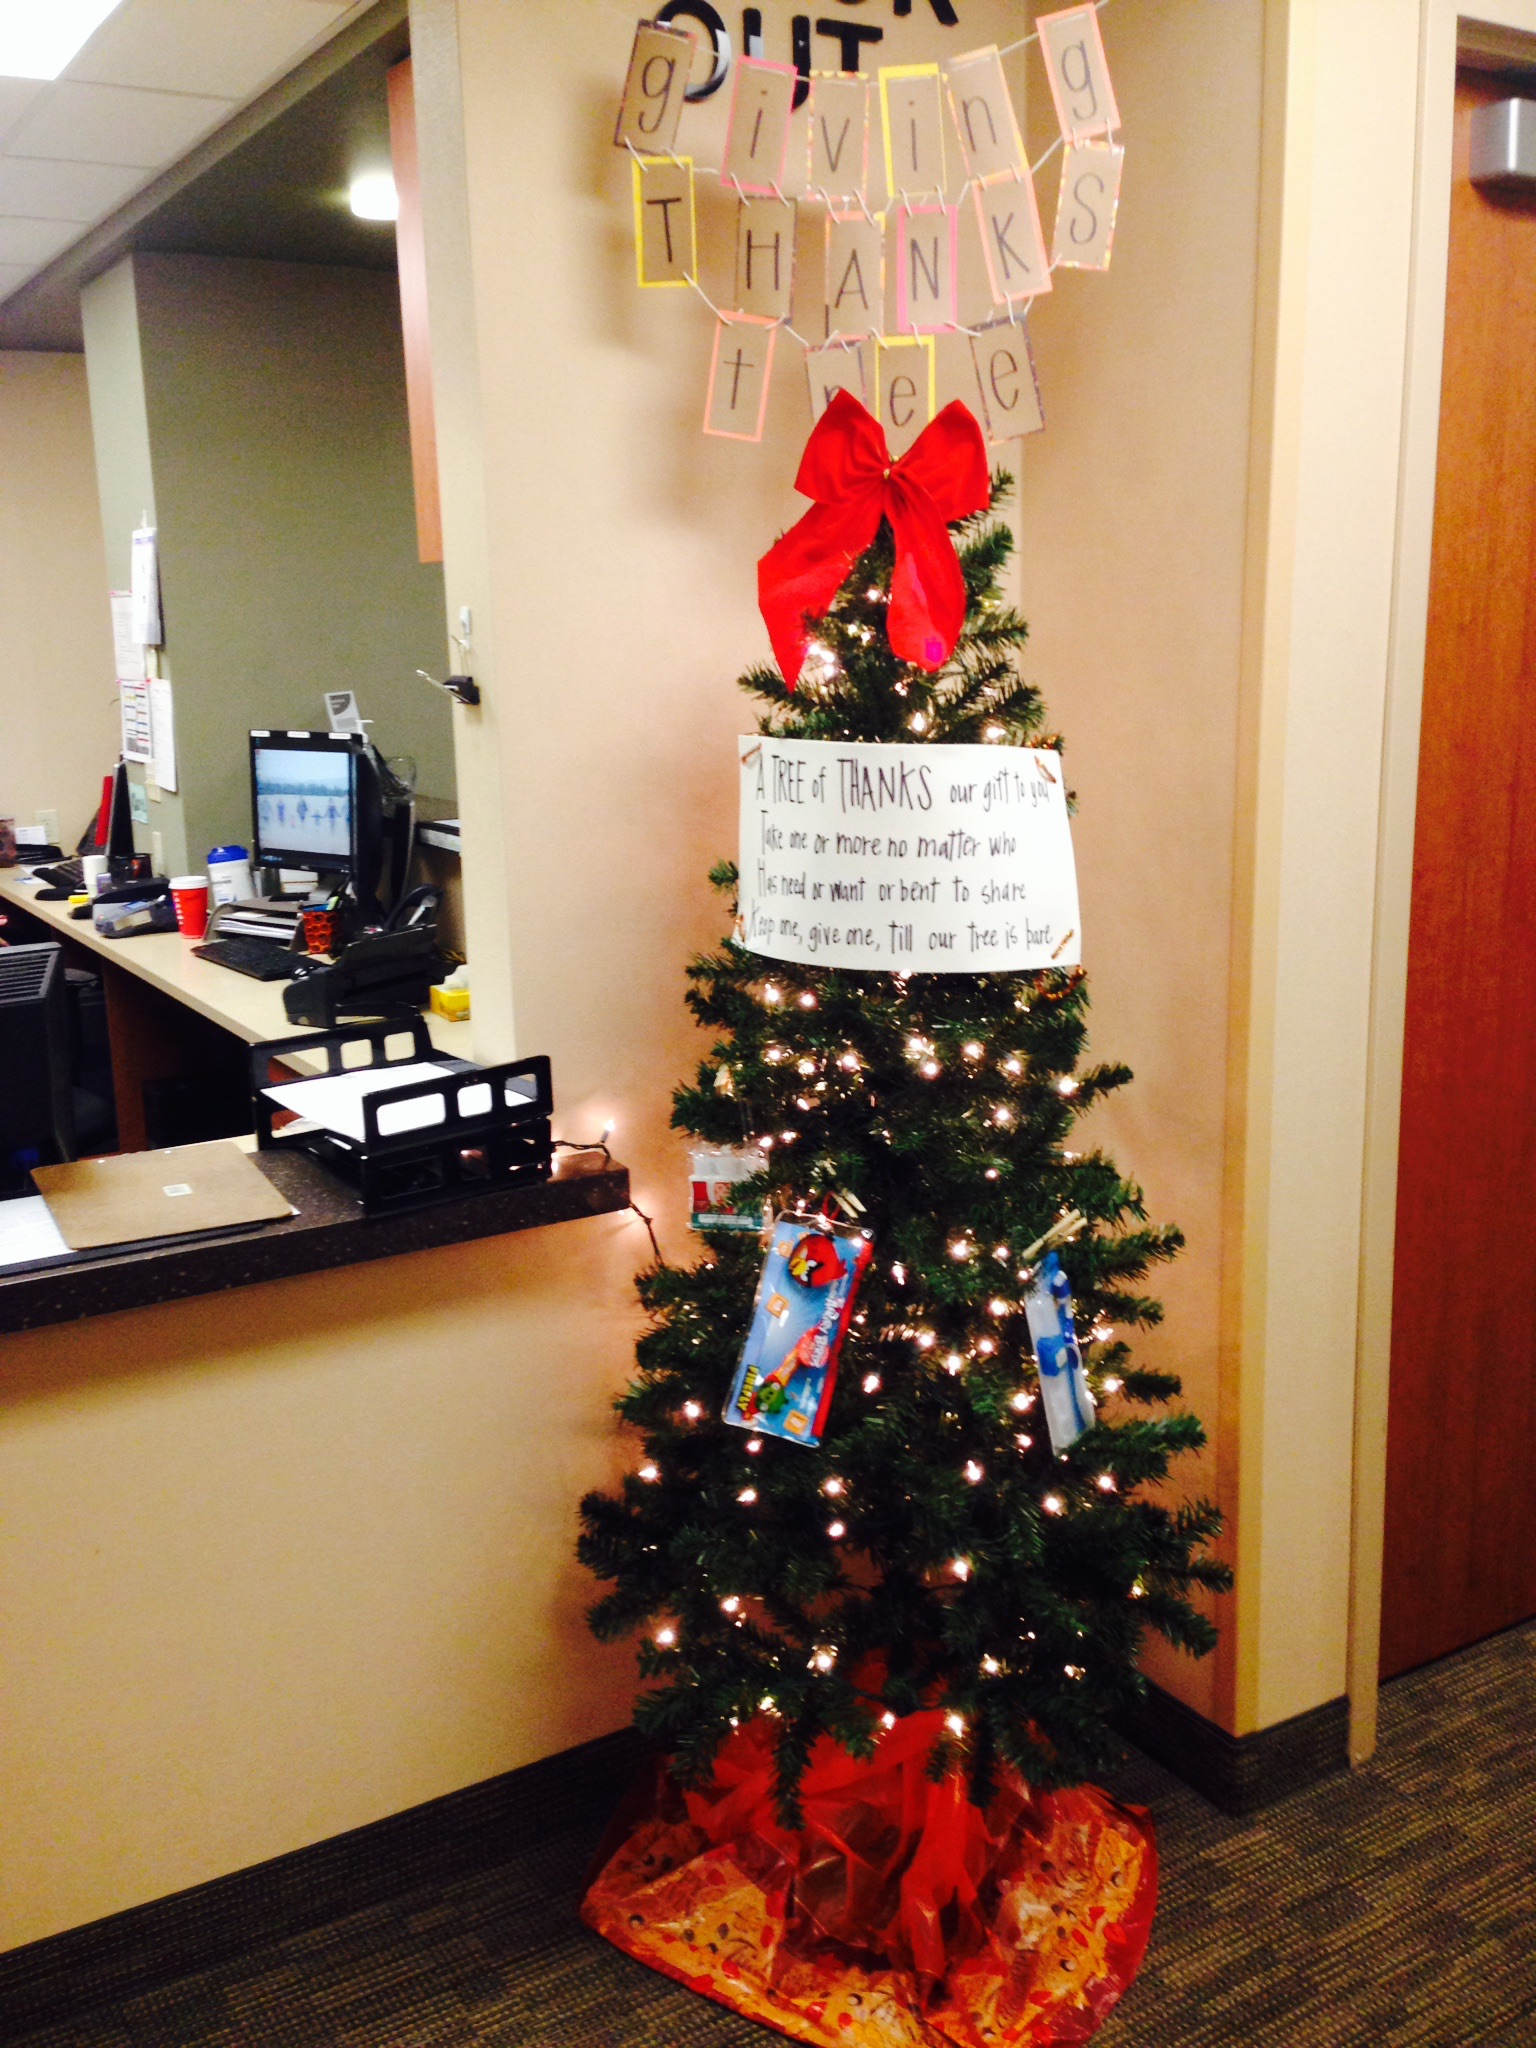 Christmas Giving Tree Ideas.Giving Tree At Christmas Sound Family Medicine